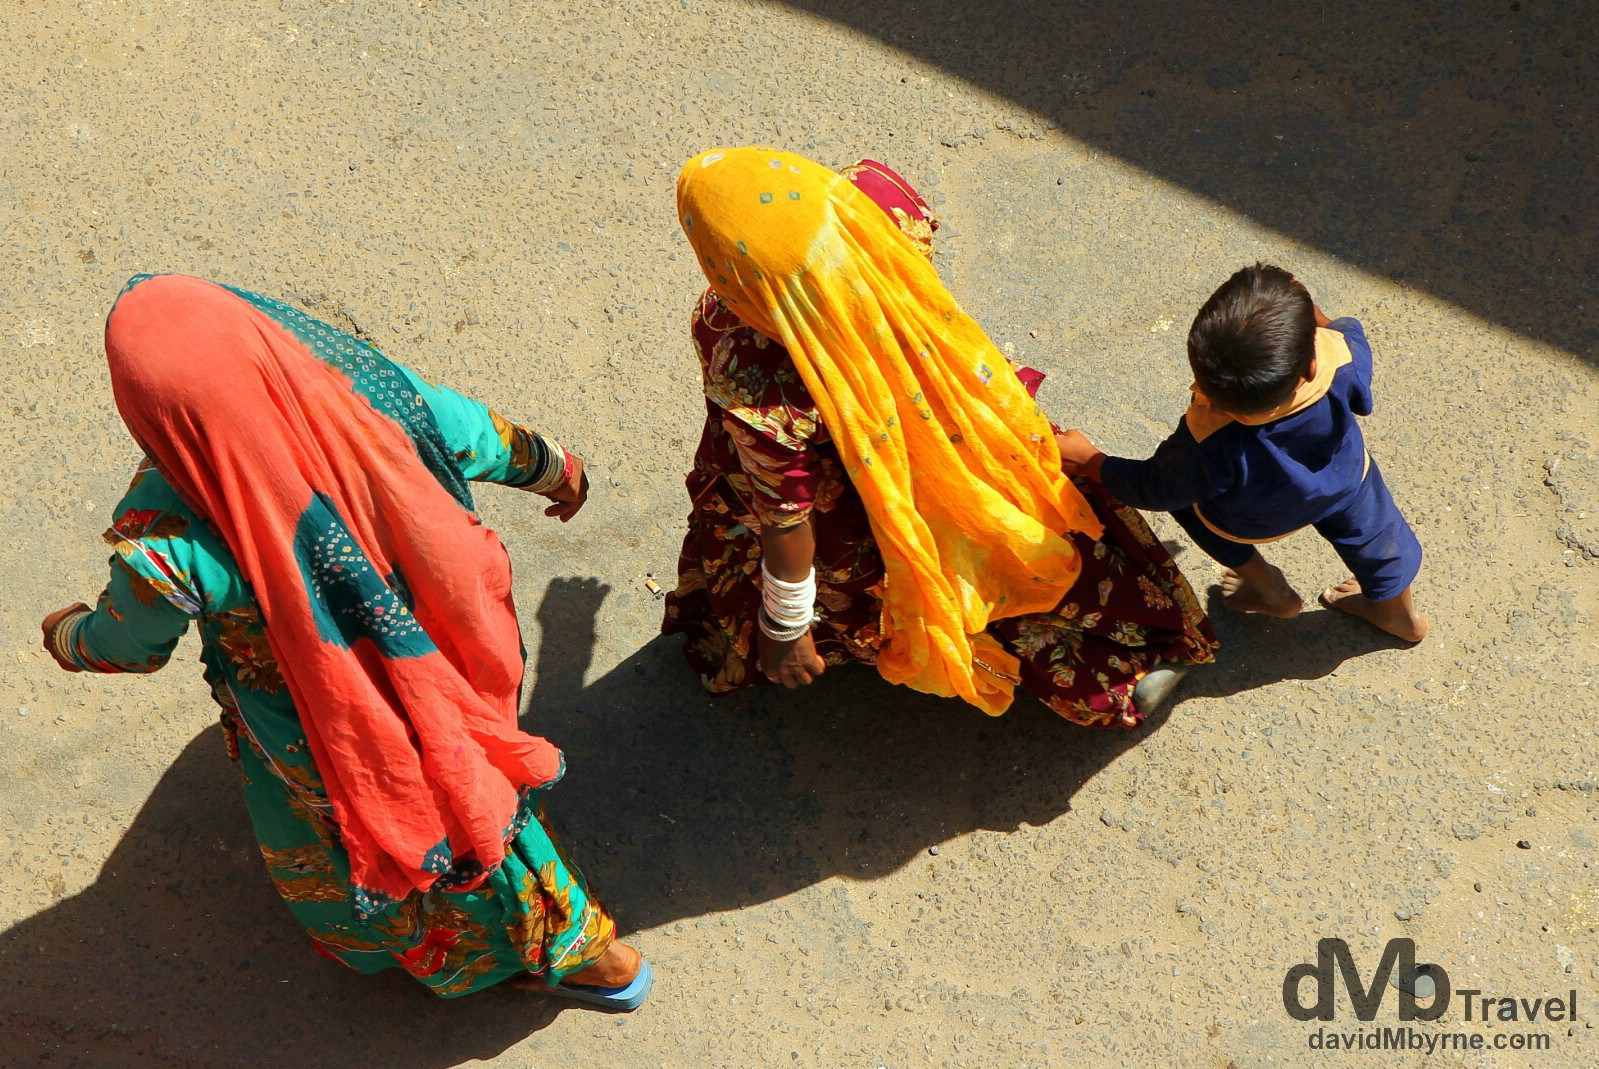 An Aerial shot on the streets of Pushkar, Rajasthan, India. October 3rd 2012.